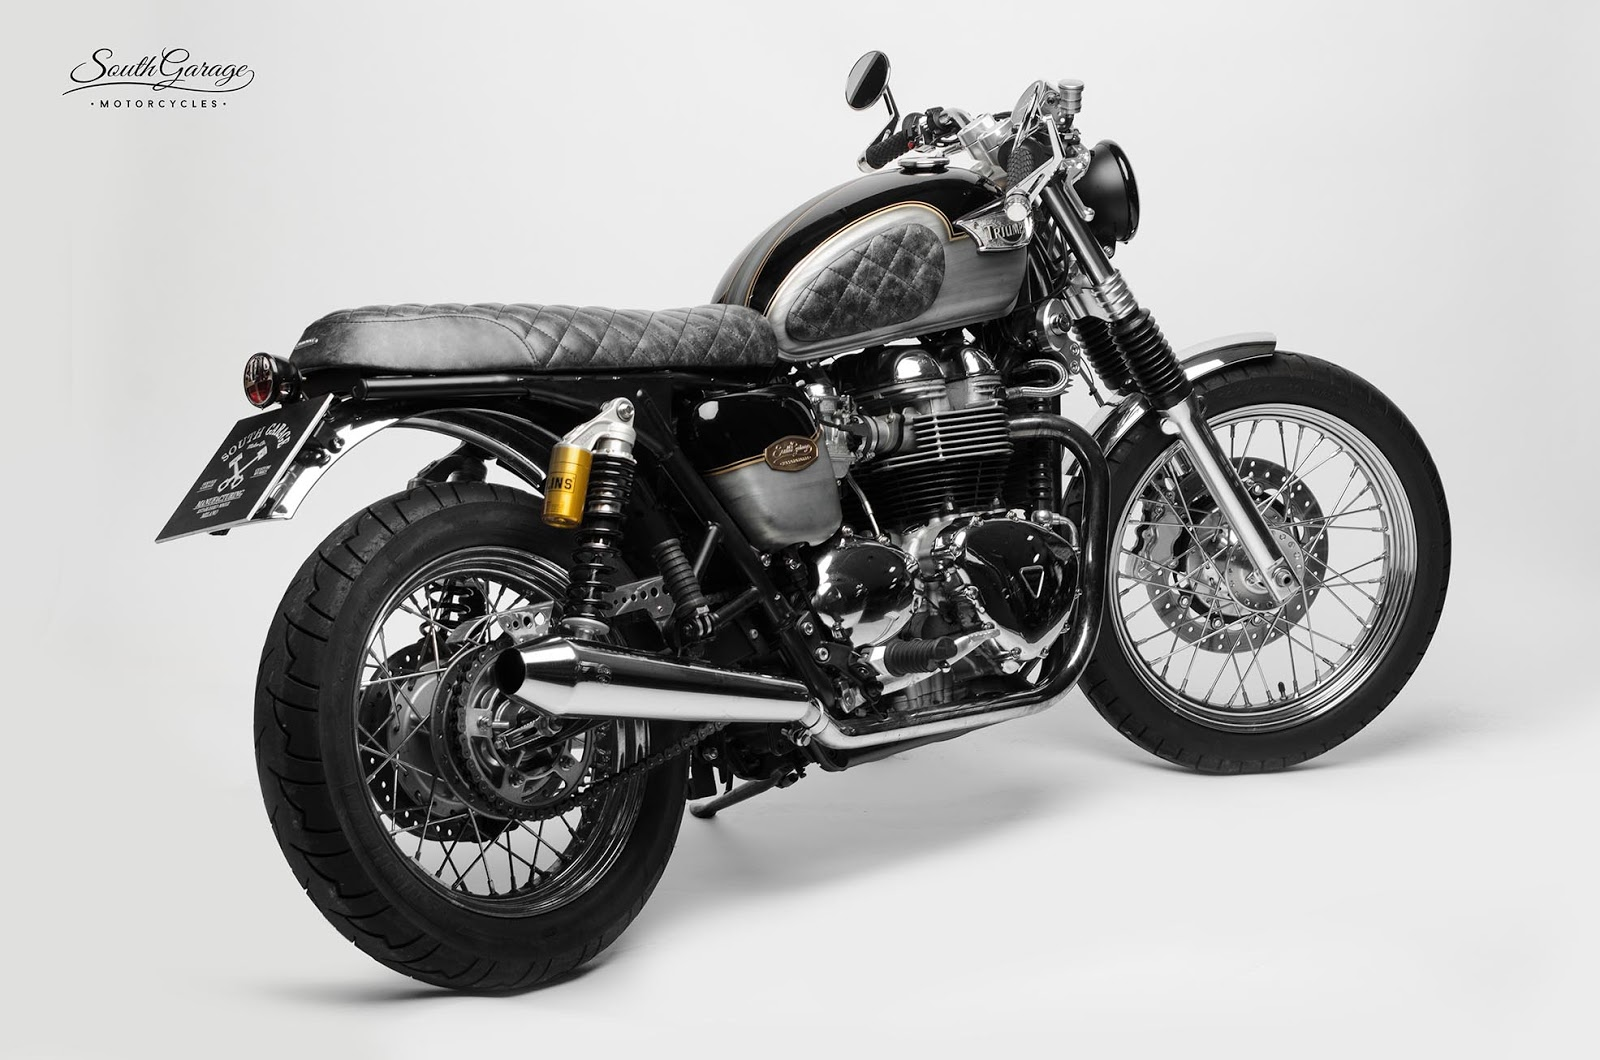 Hell kustom triumph bonneville by south garage motorcycles - Garage peugeot bonneville ...